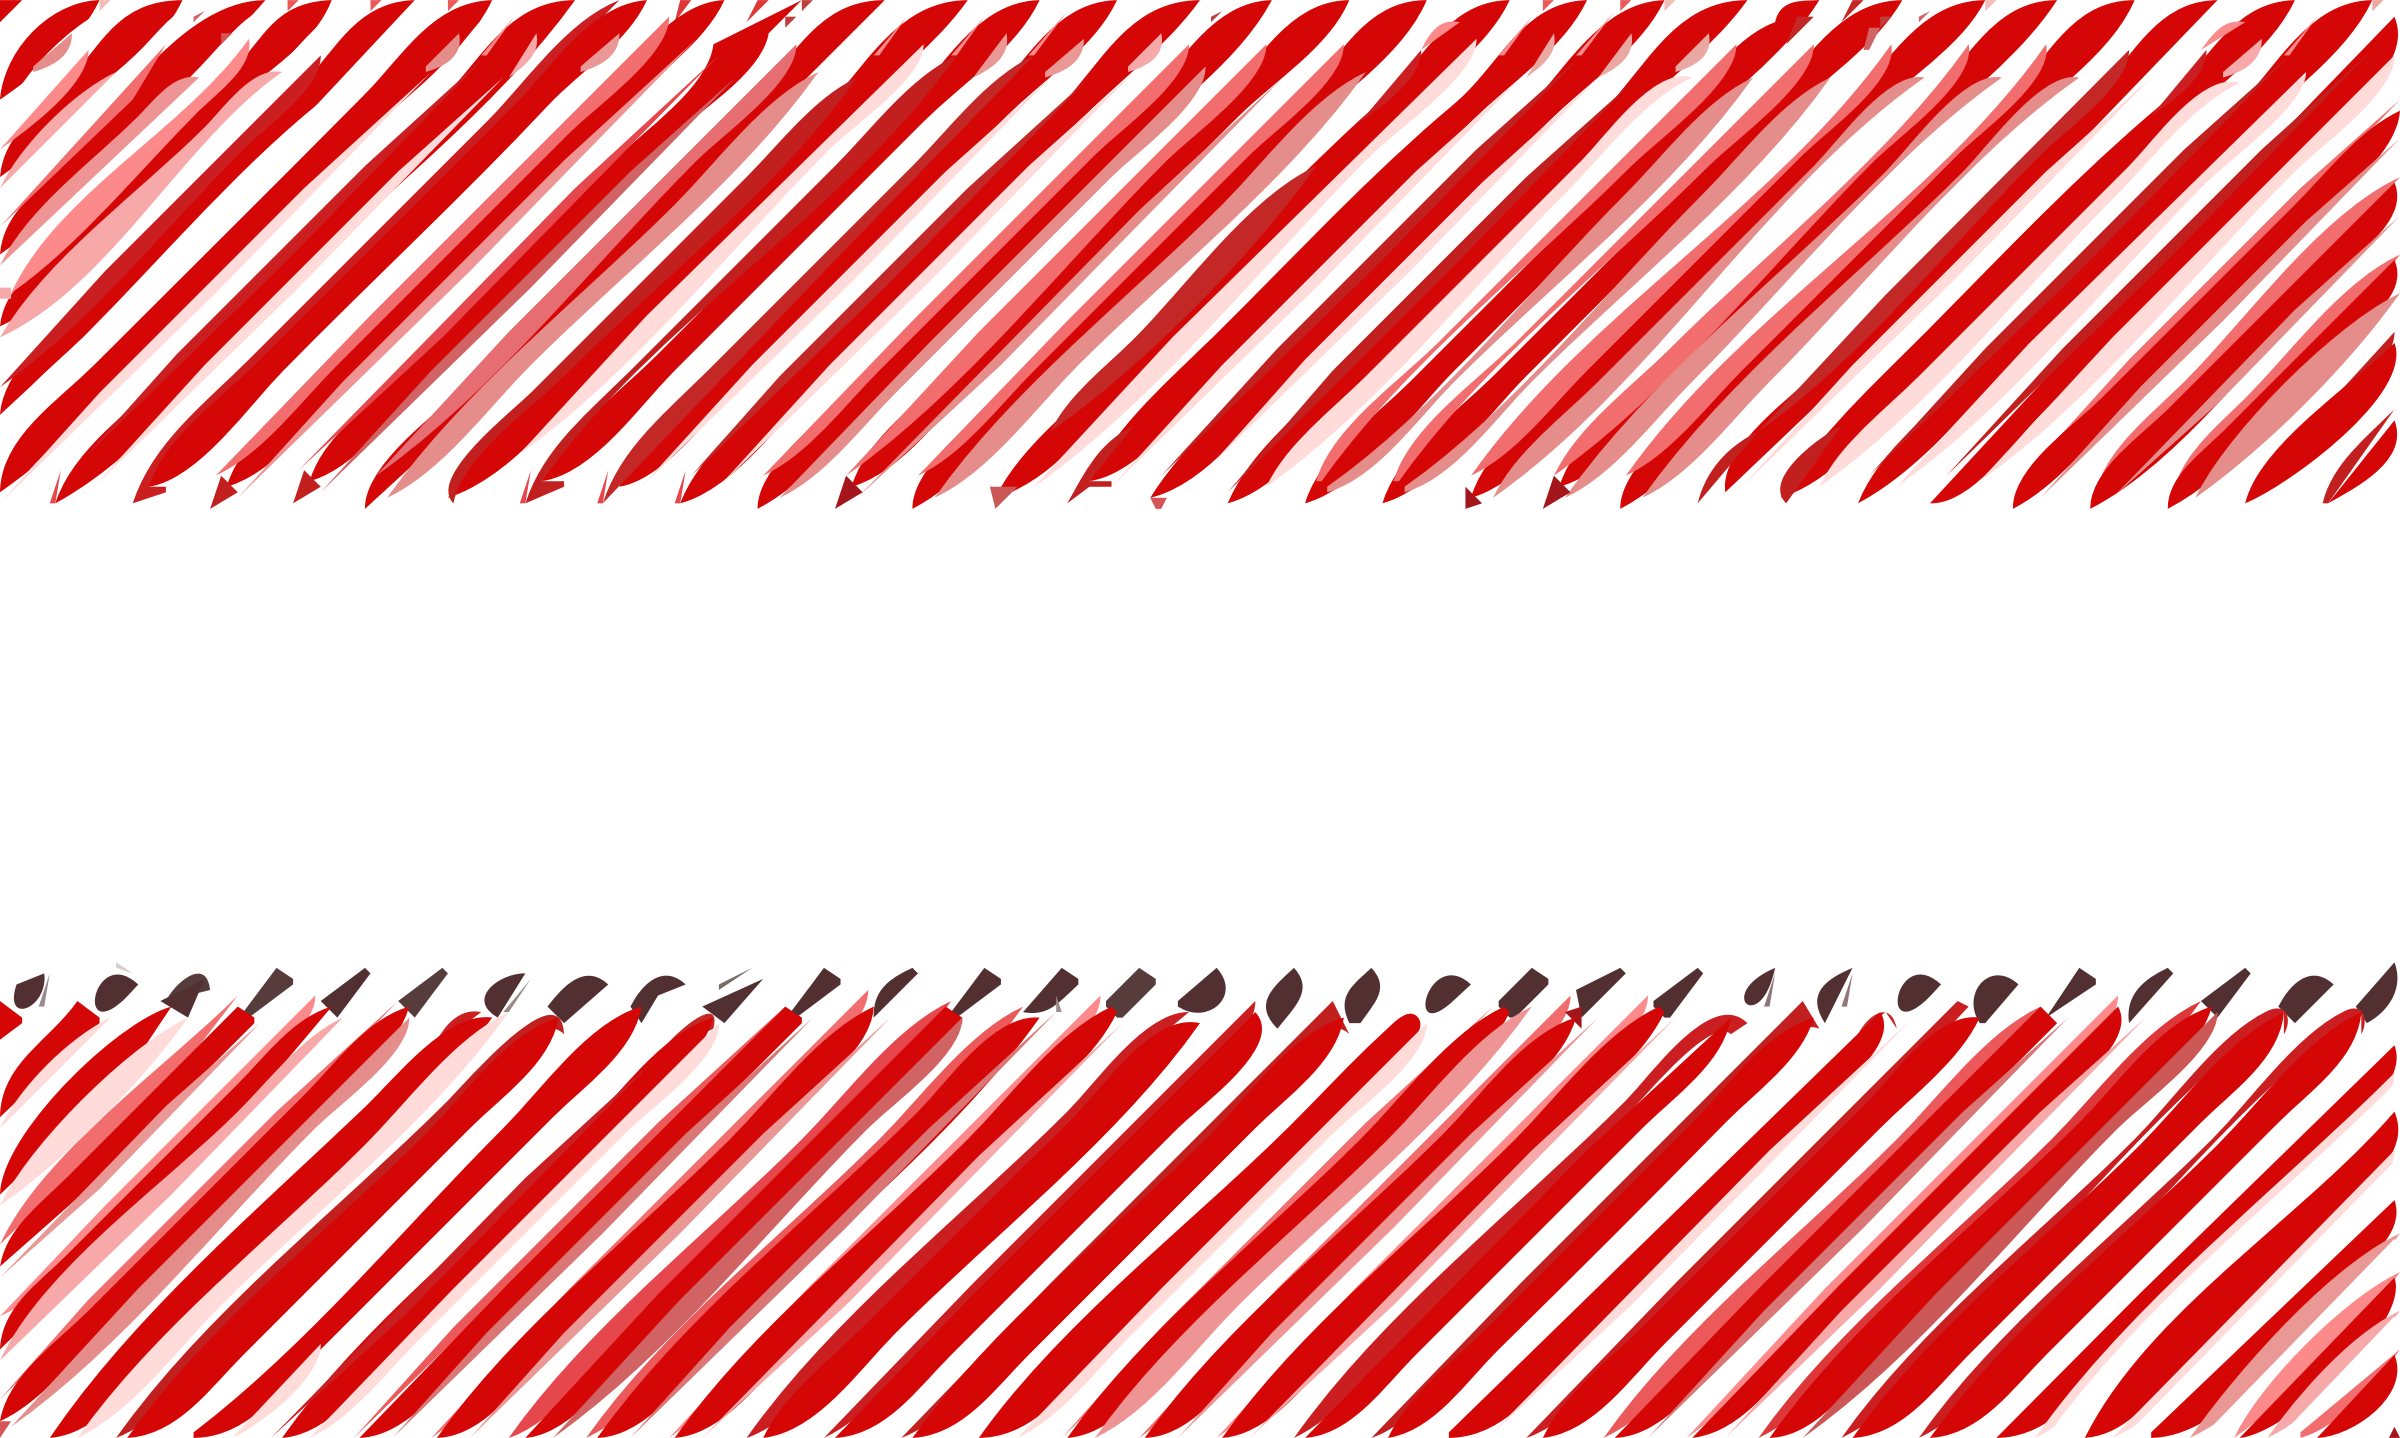 Austria flag linear by Joesph